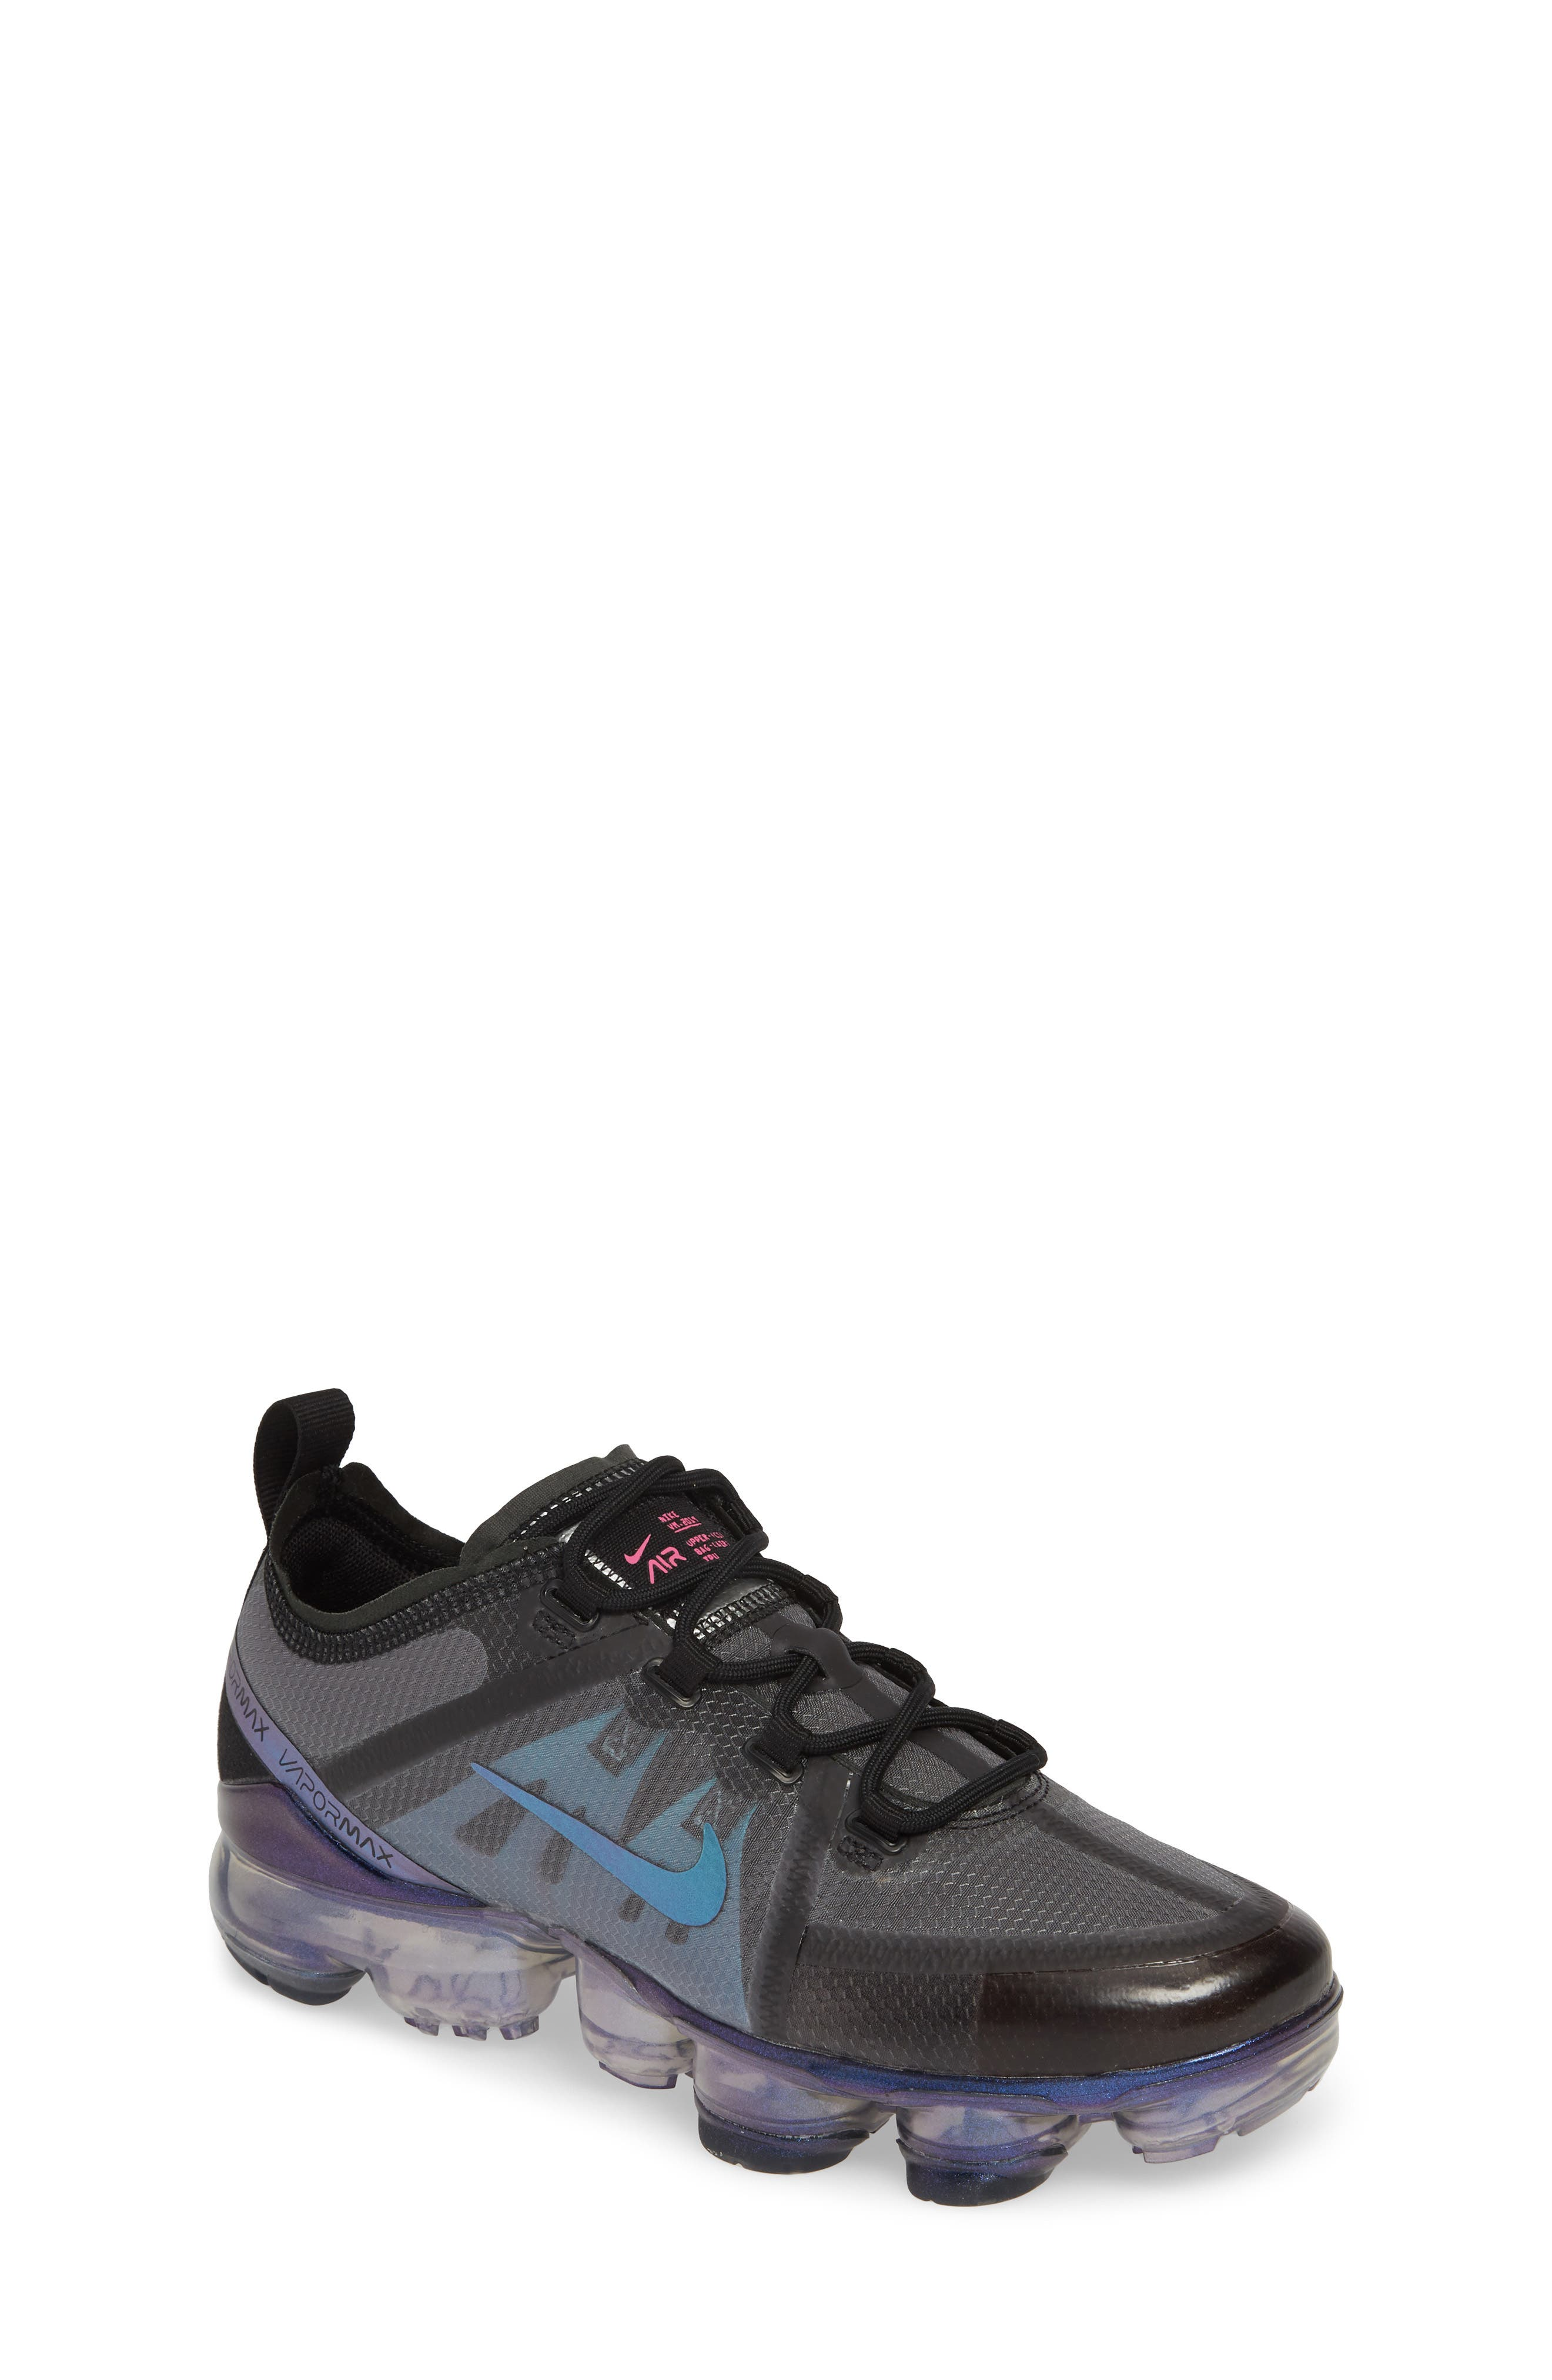 NIKE, Air VaporMax 2019 Running Shoe, Main thumbnail 1, color, BLACK/ FUCHSIA-ANTHRACITE